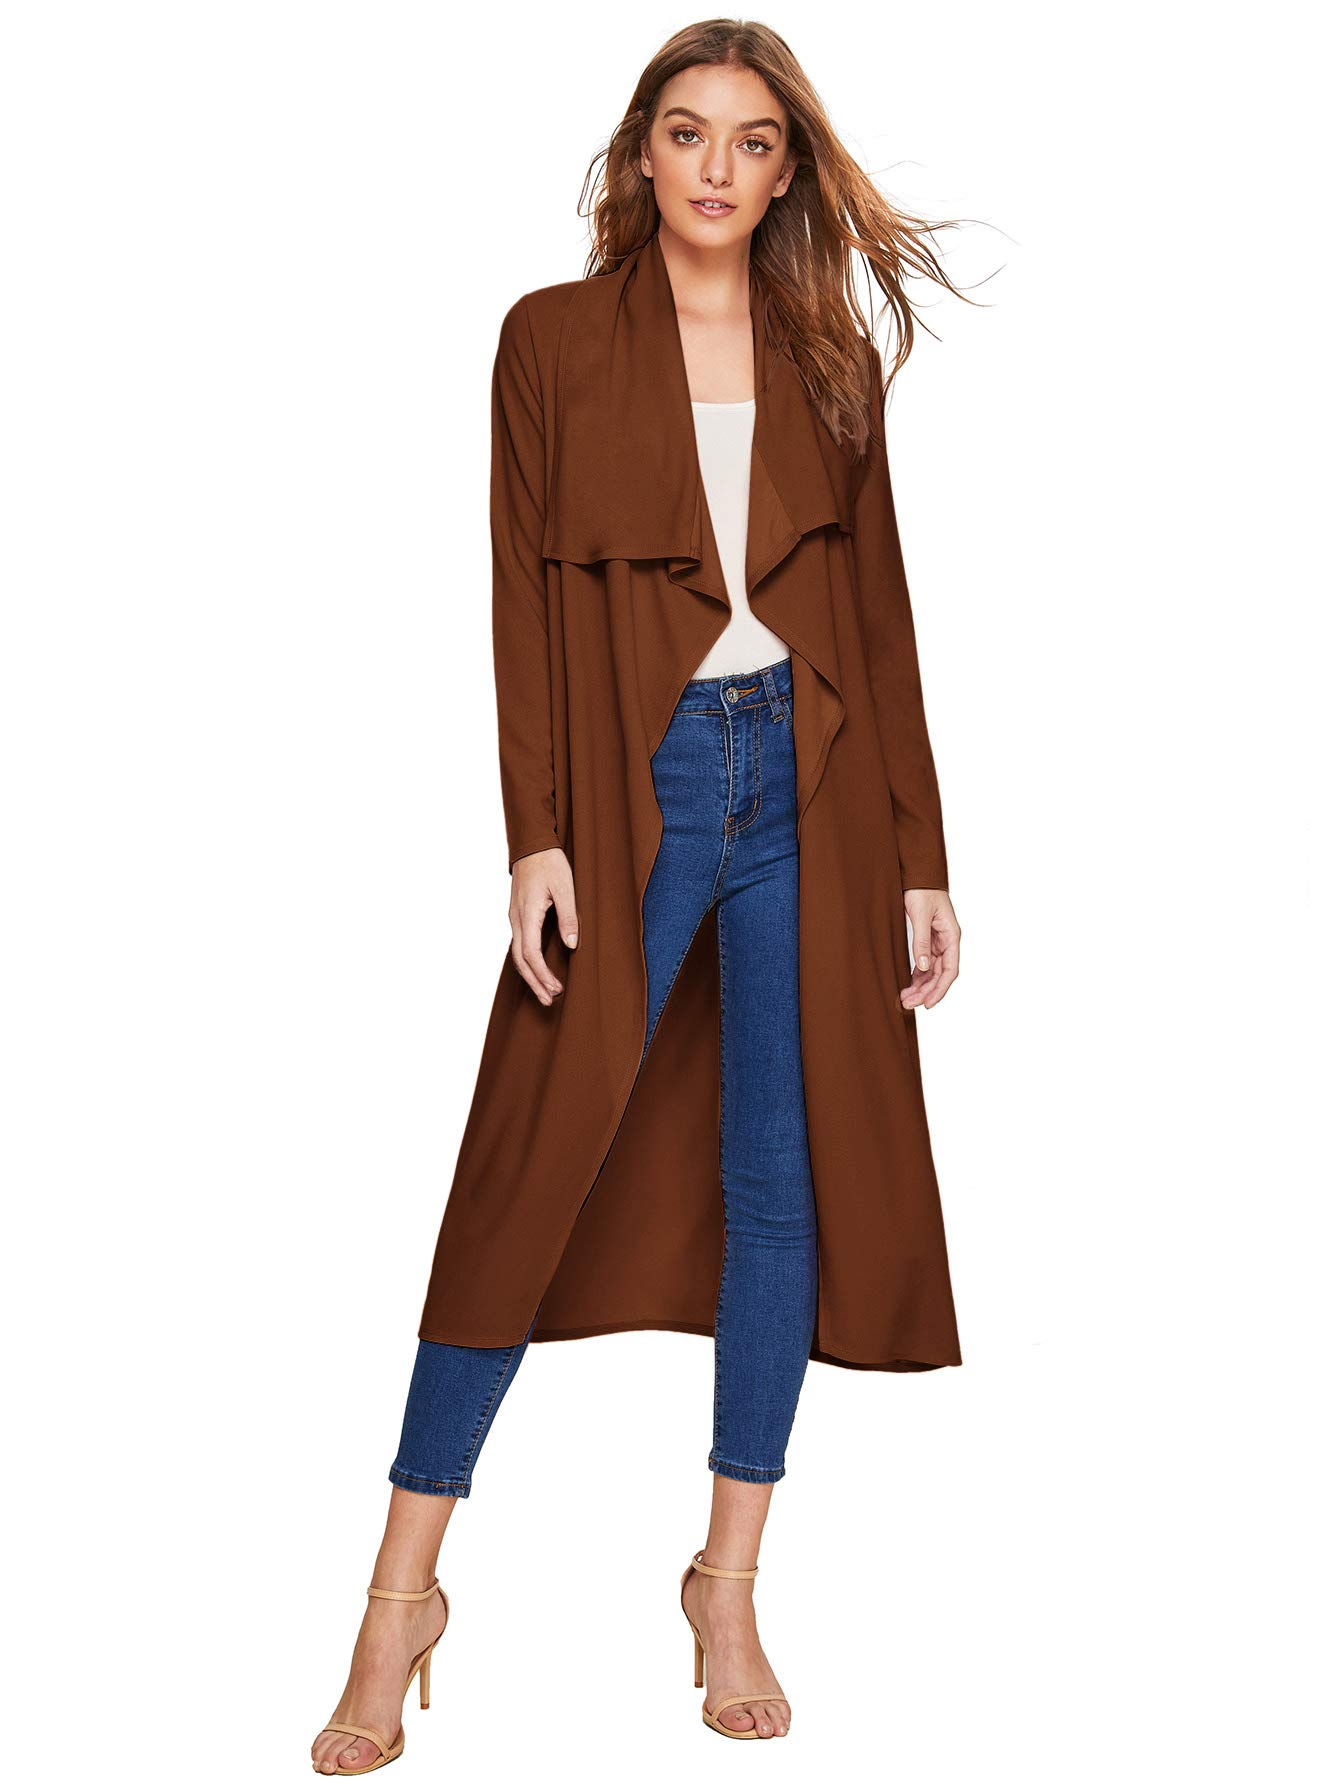 Verdusa Women's Casual Long Sleeve Lapel Outwear Duster Coat Cardigan Coffee Thick XL by Verdusa